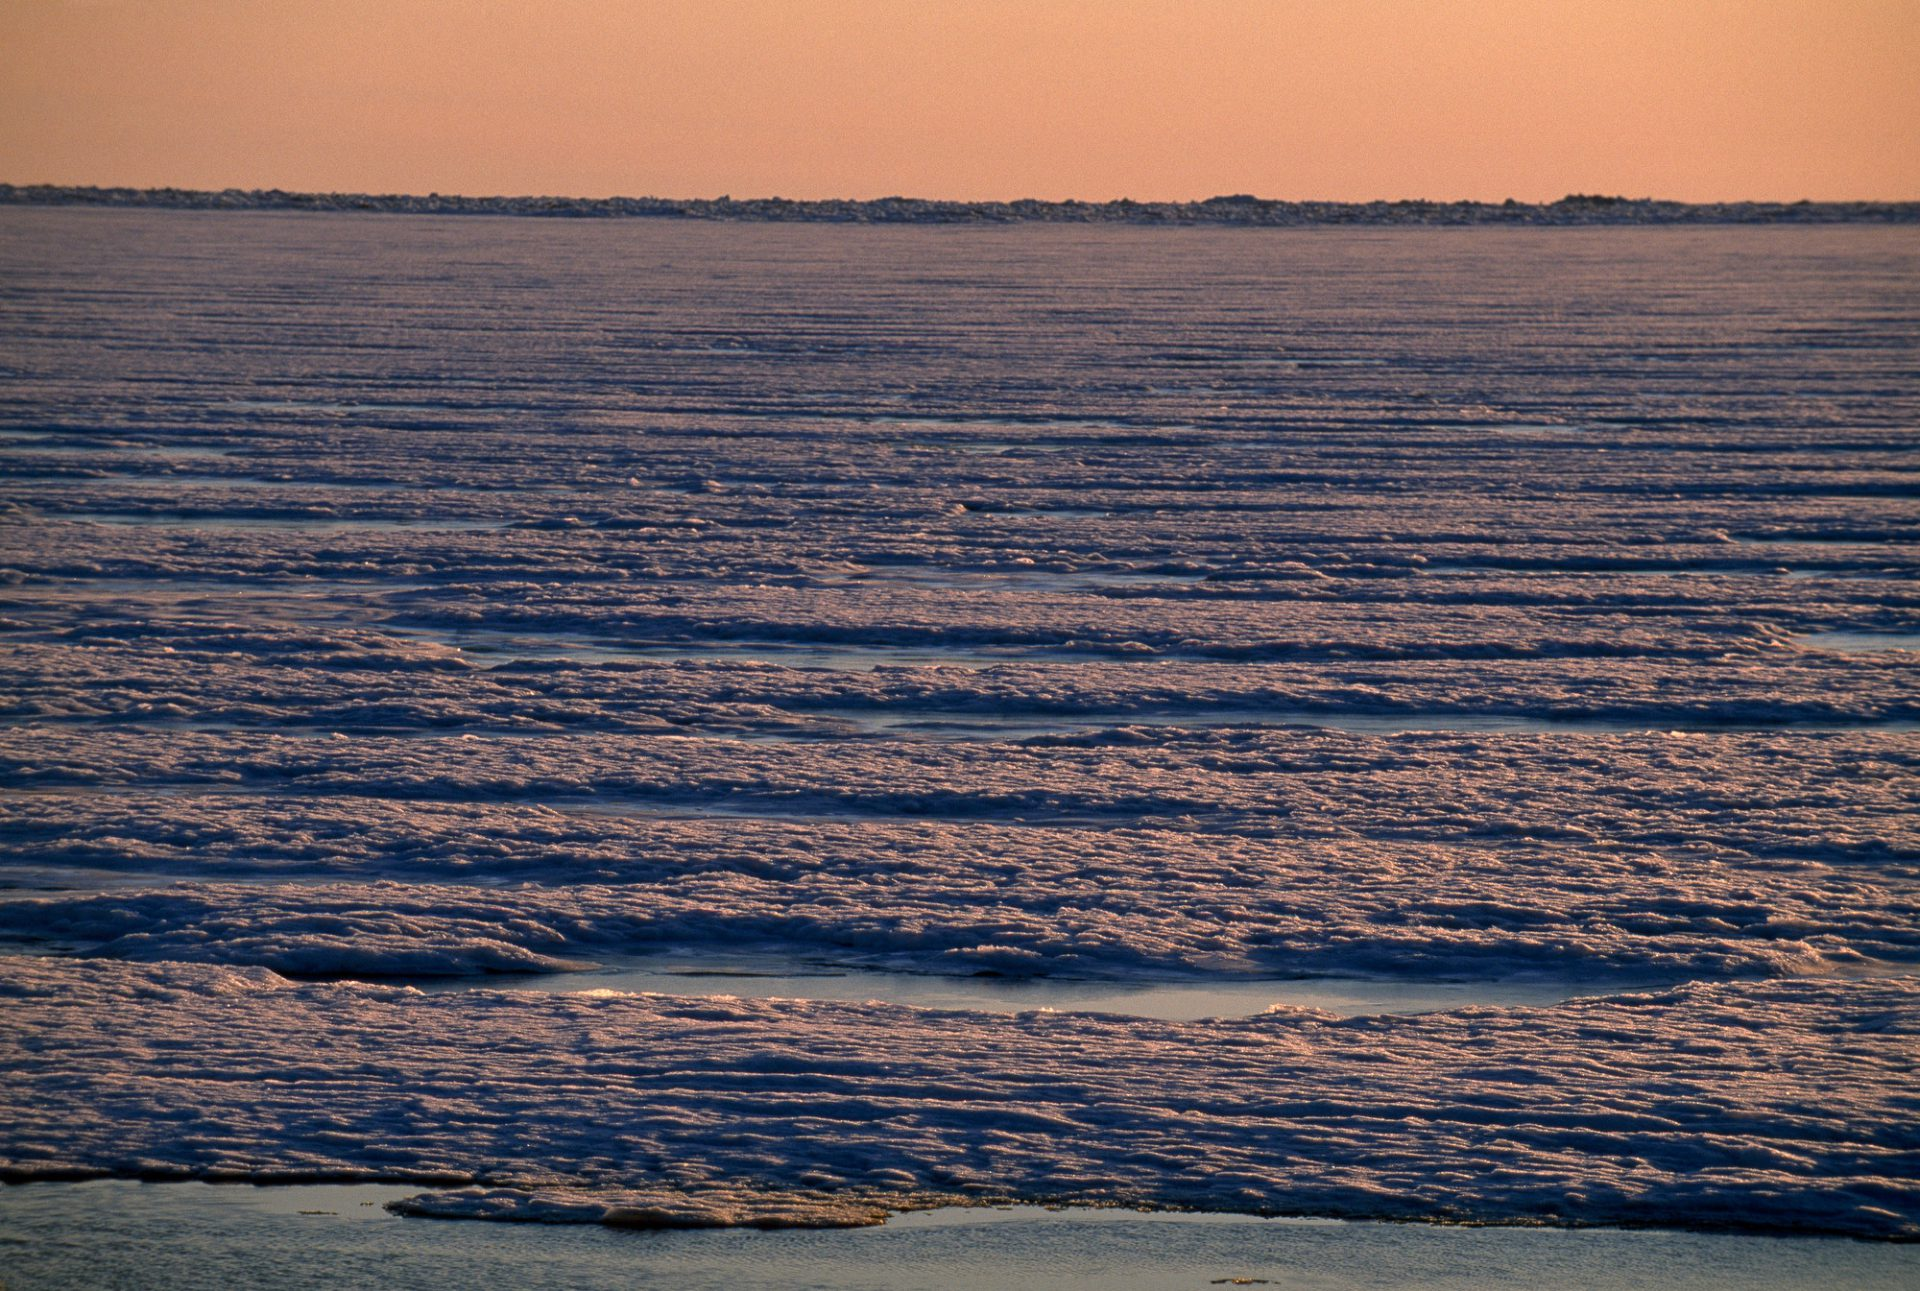 Photo: A blanket of sea ice over the Beaufort Sea, near Prudhoe Bay.